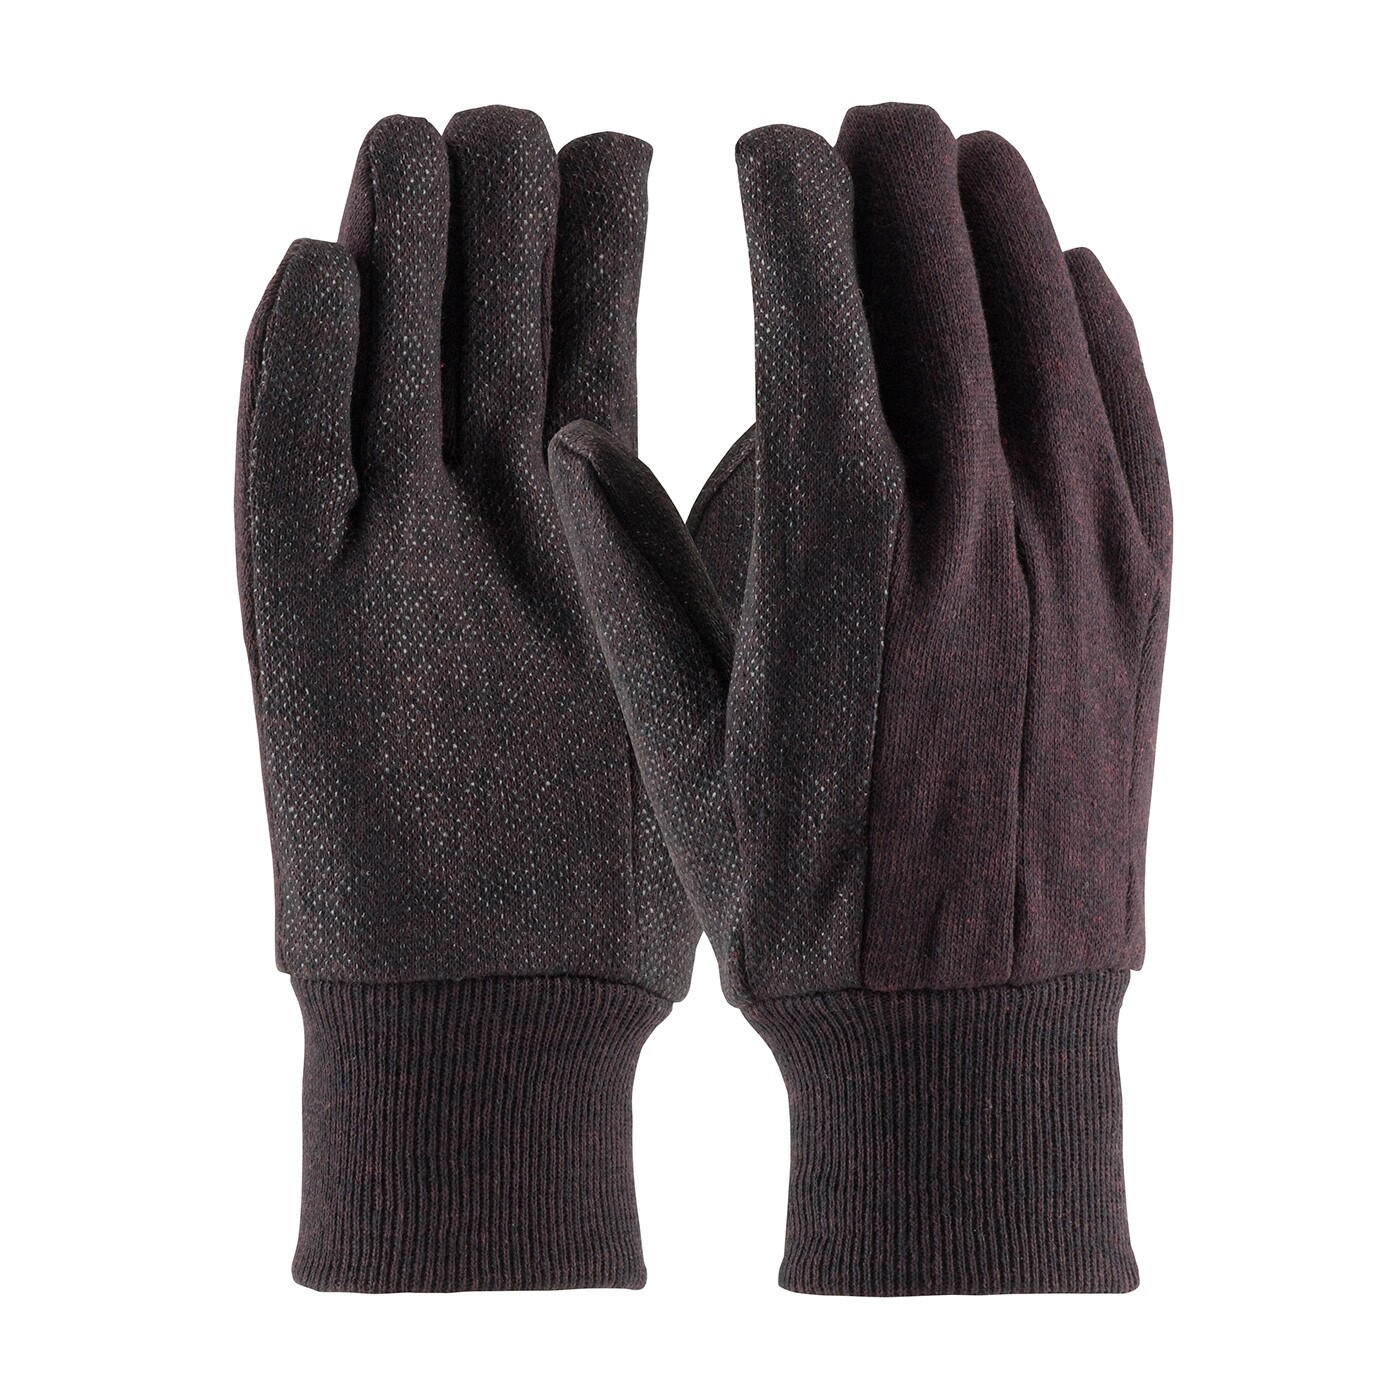 9 oz brown jersey dotted work gloves chore gloves